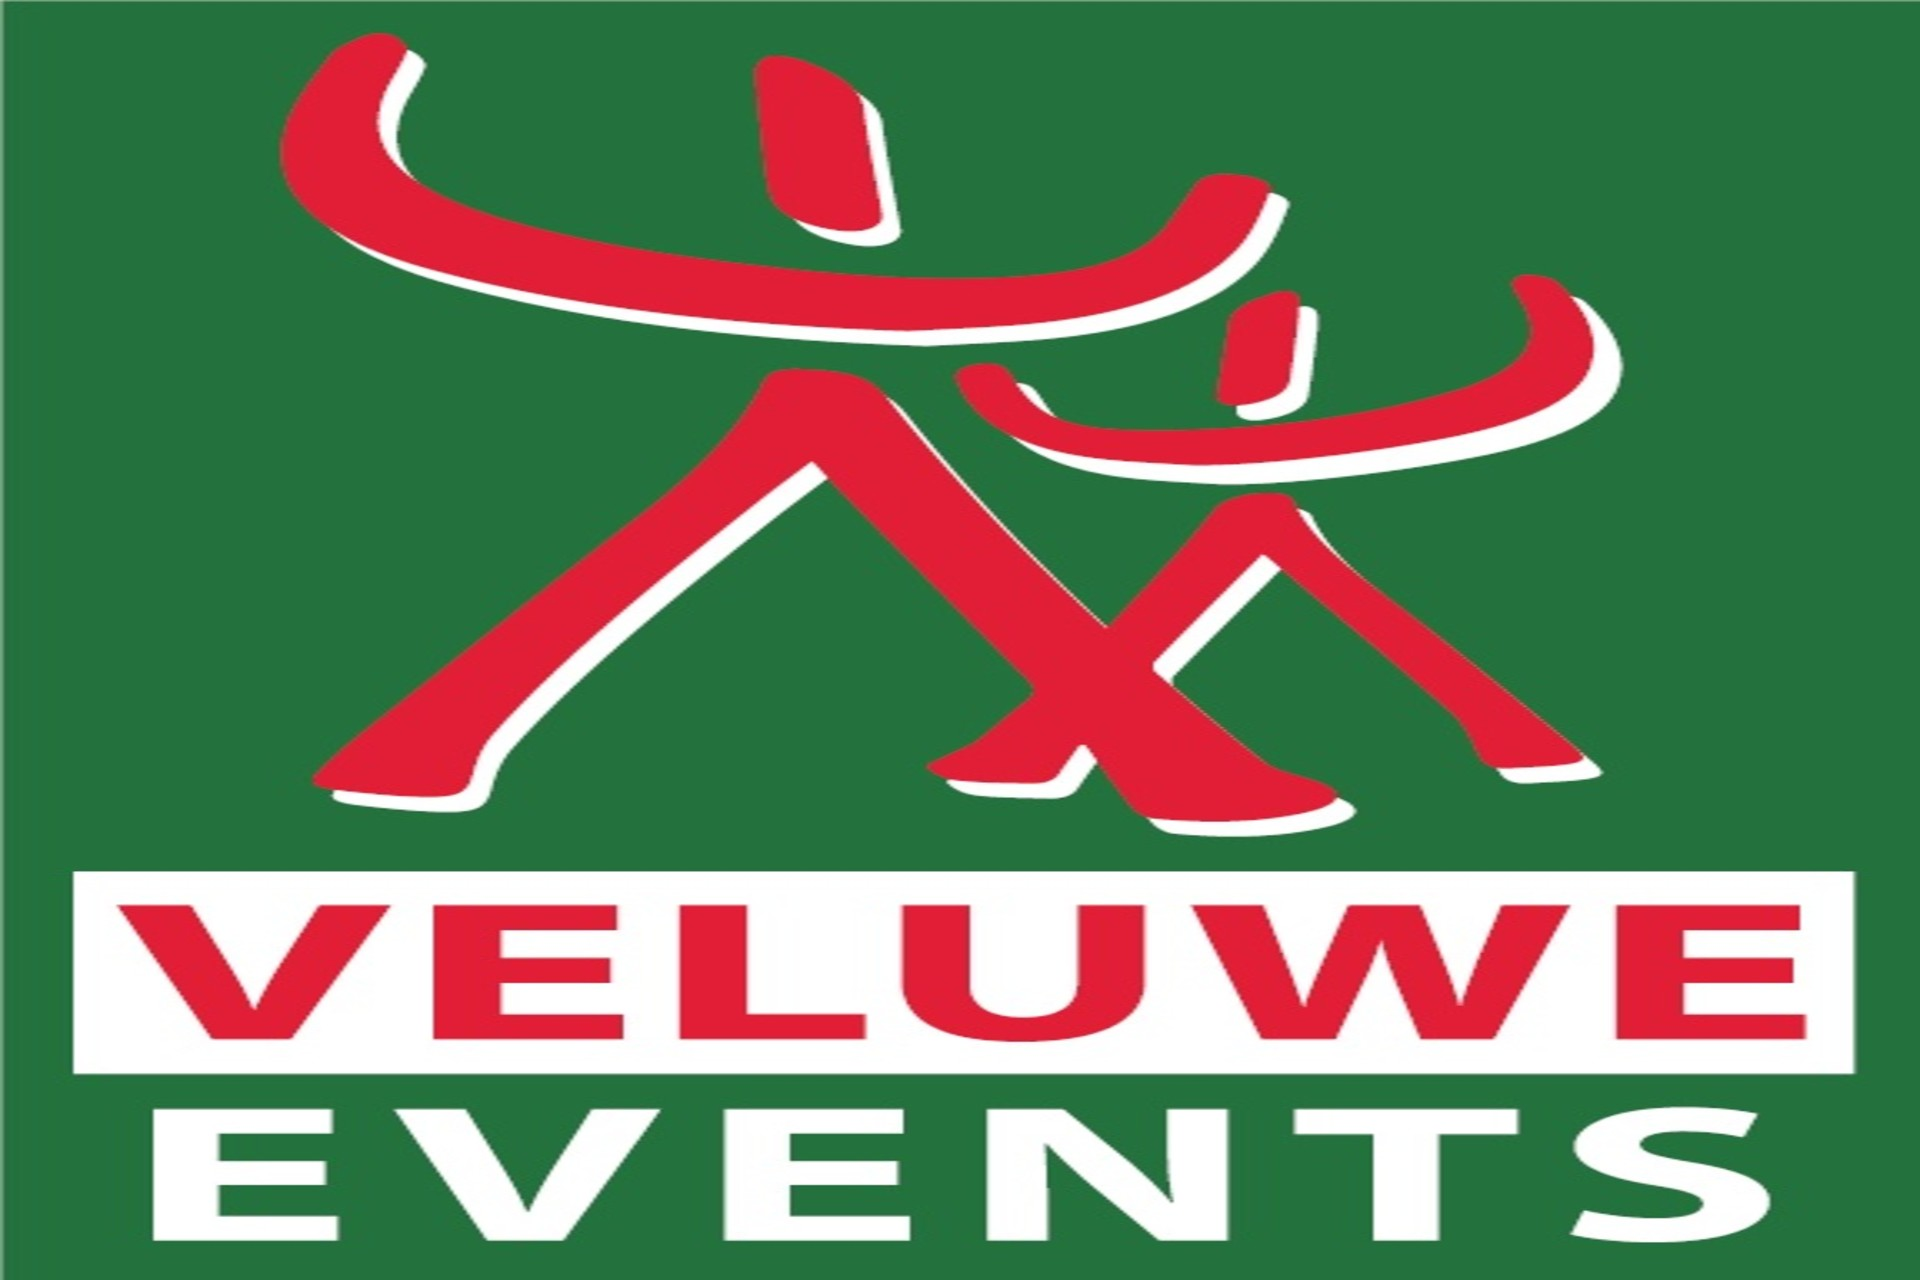 Veluwe Events